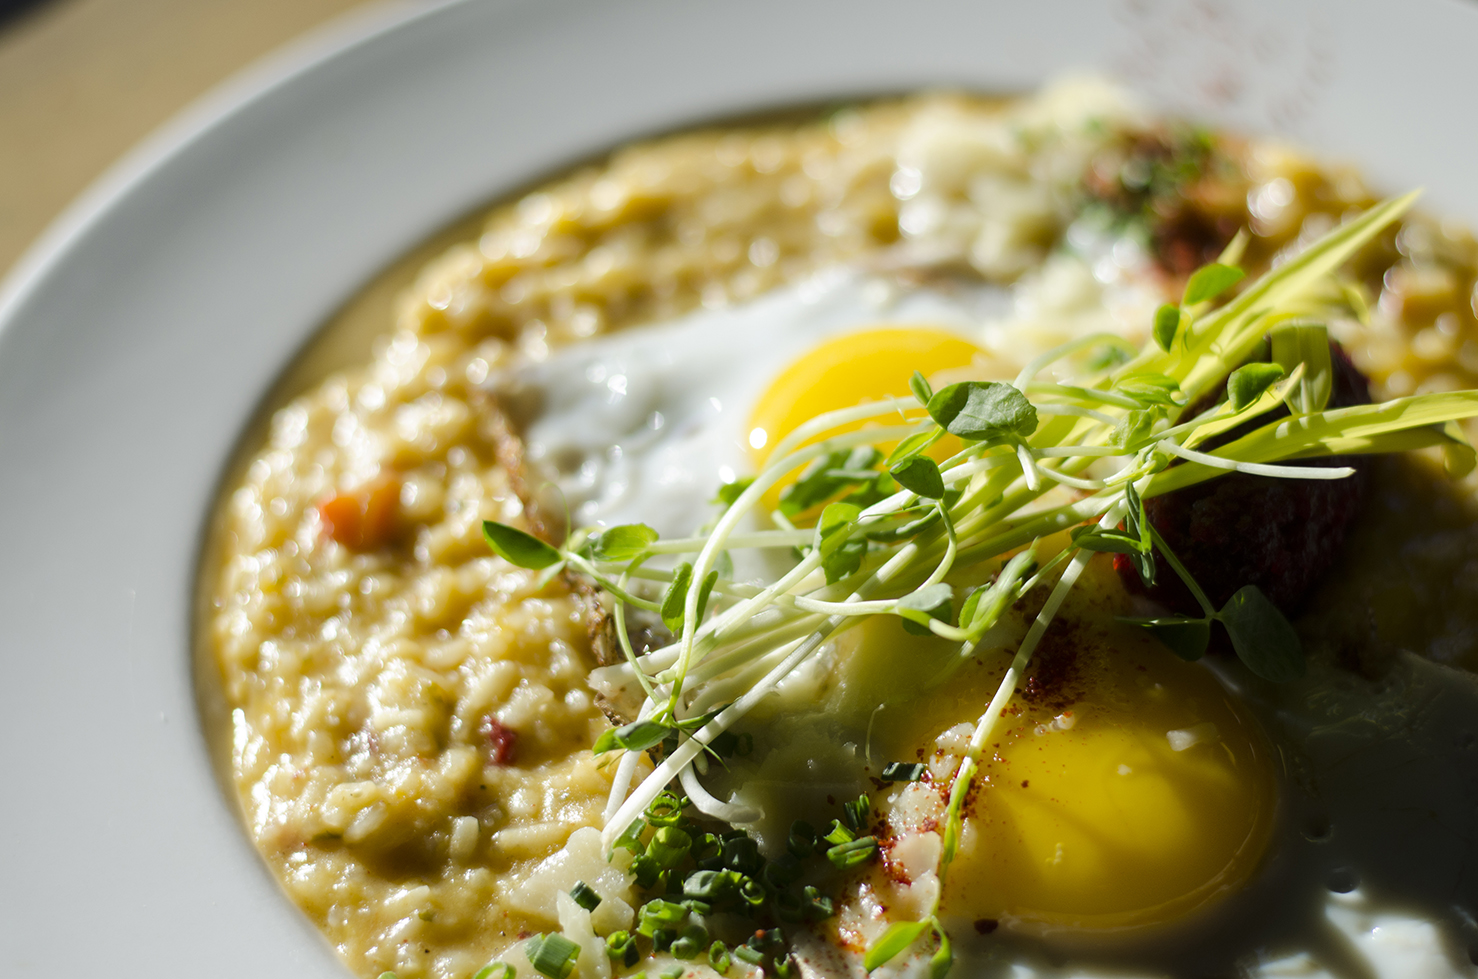 Breakfast Pumpkin Risotto